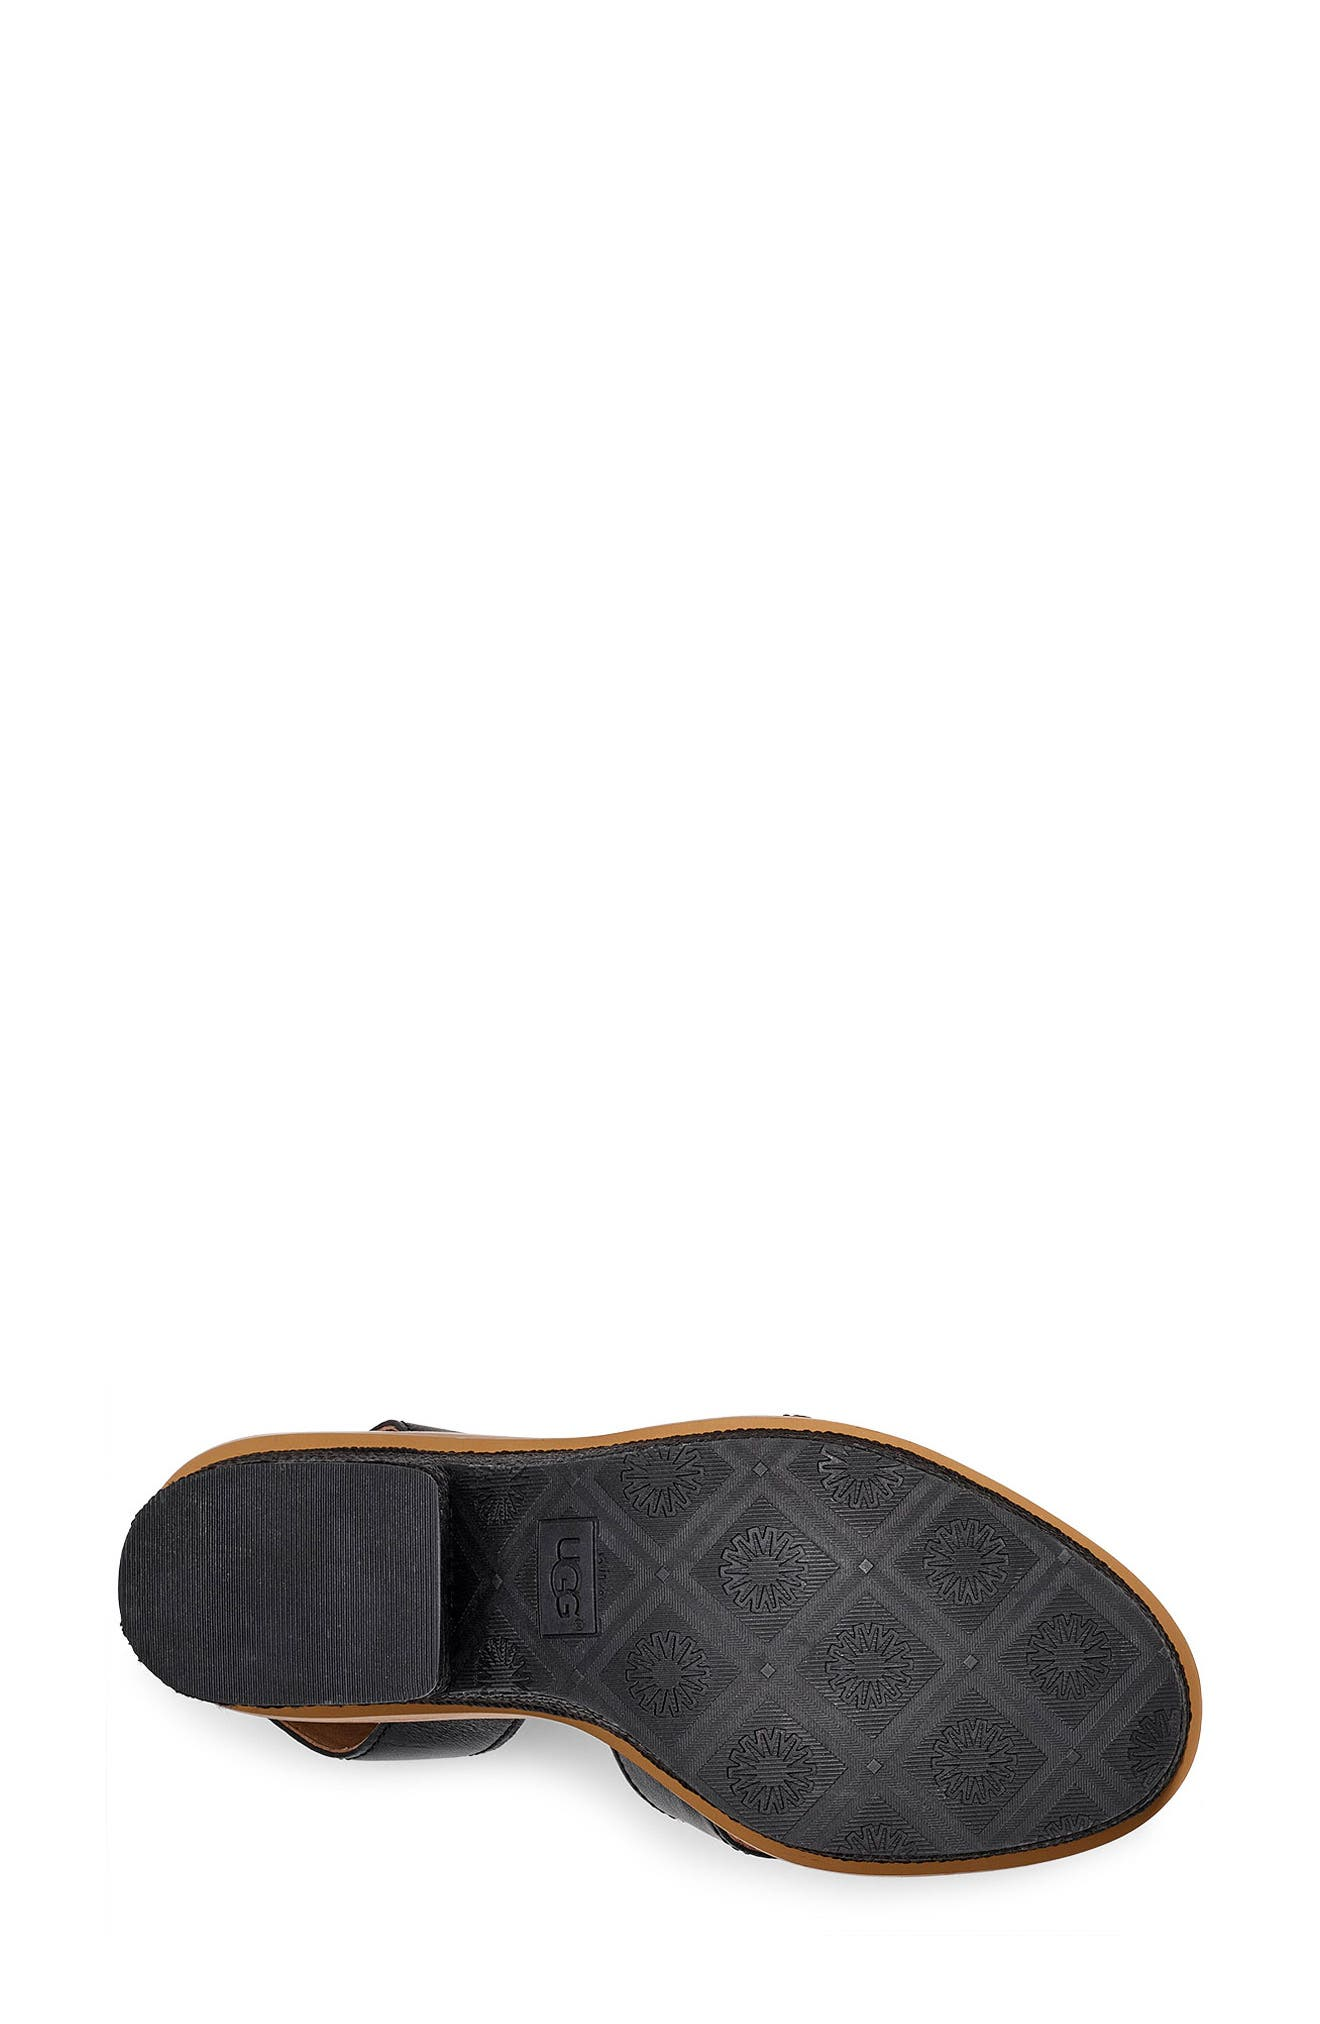 Carine Platform Sandal,                             Alternate thumbnail 5, color,                             BLACK LEATHER